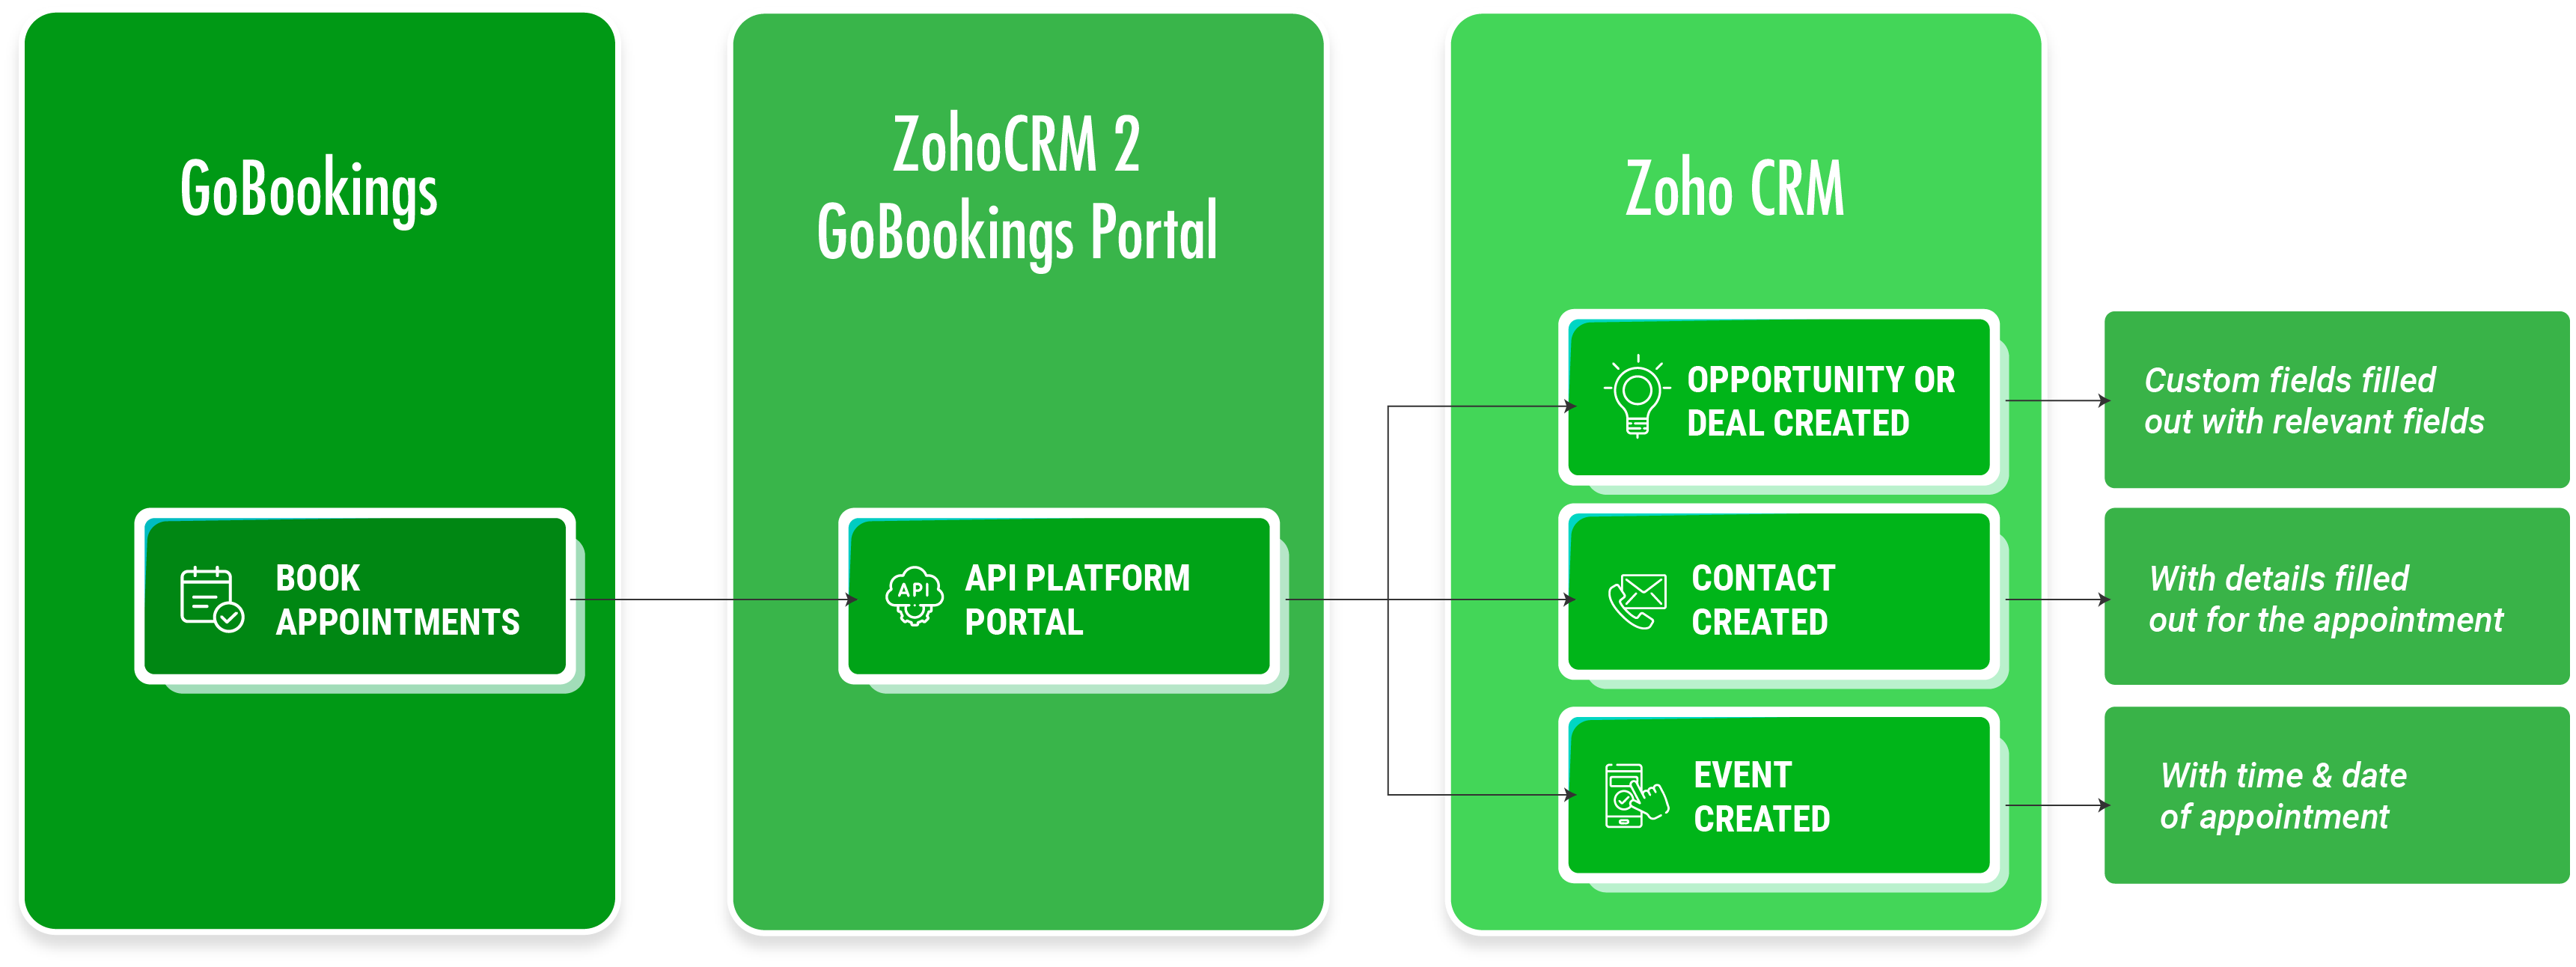 GoBookings Zoho CRM Process